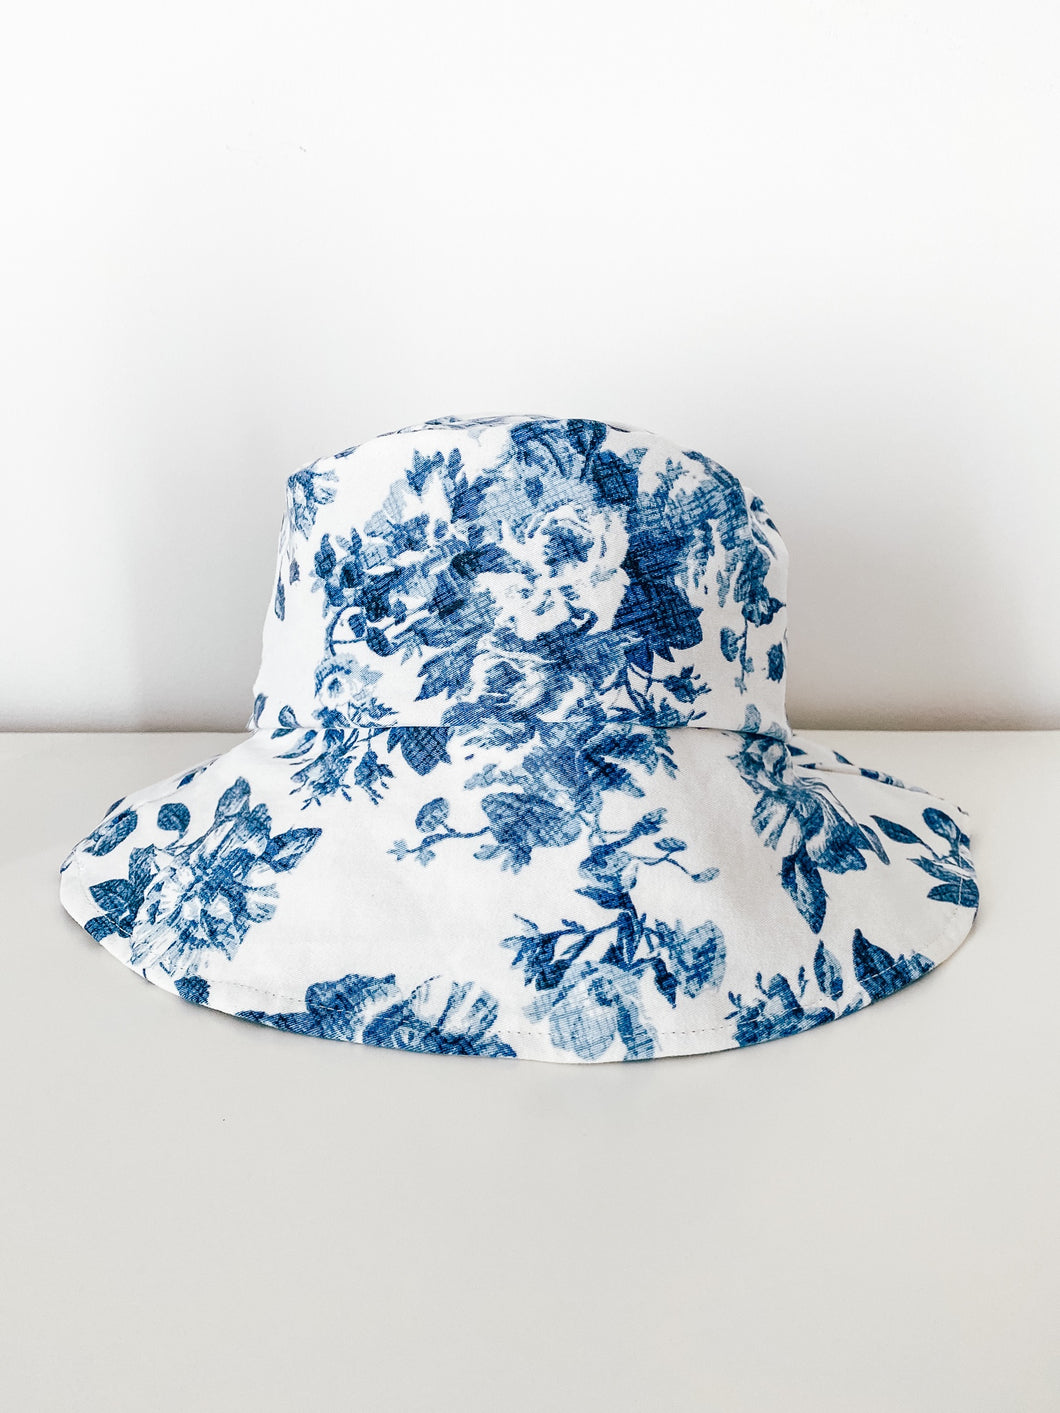 Upcycled Floral Denim Bucket Hat